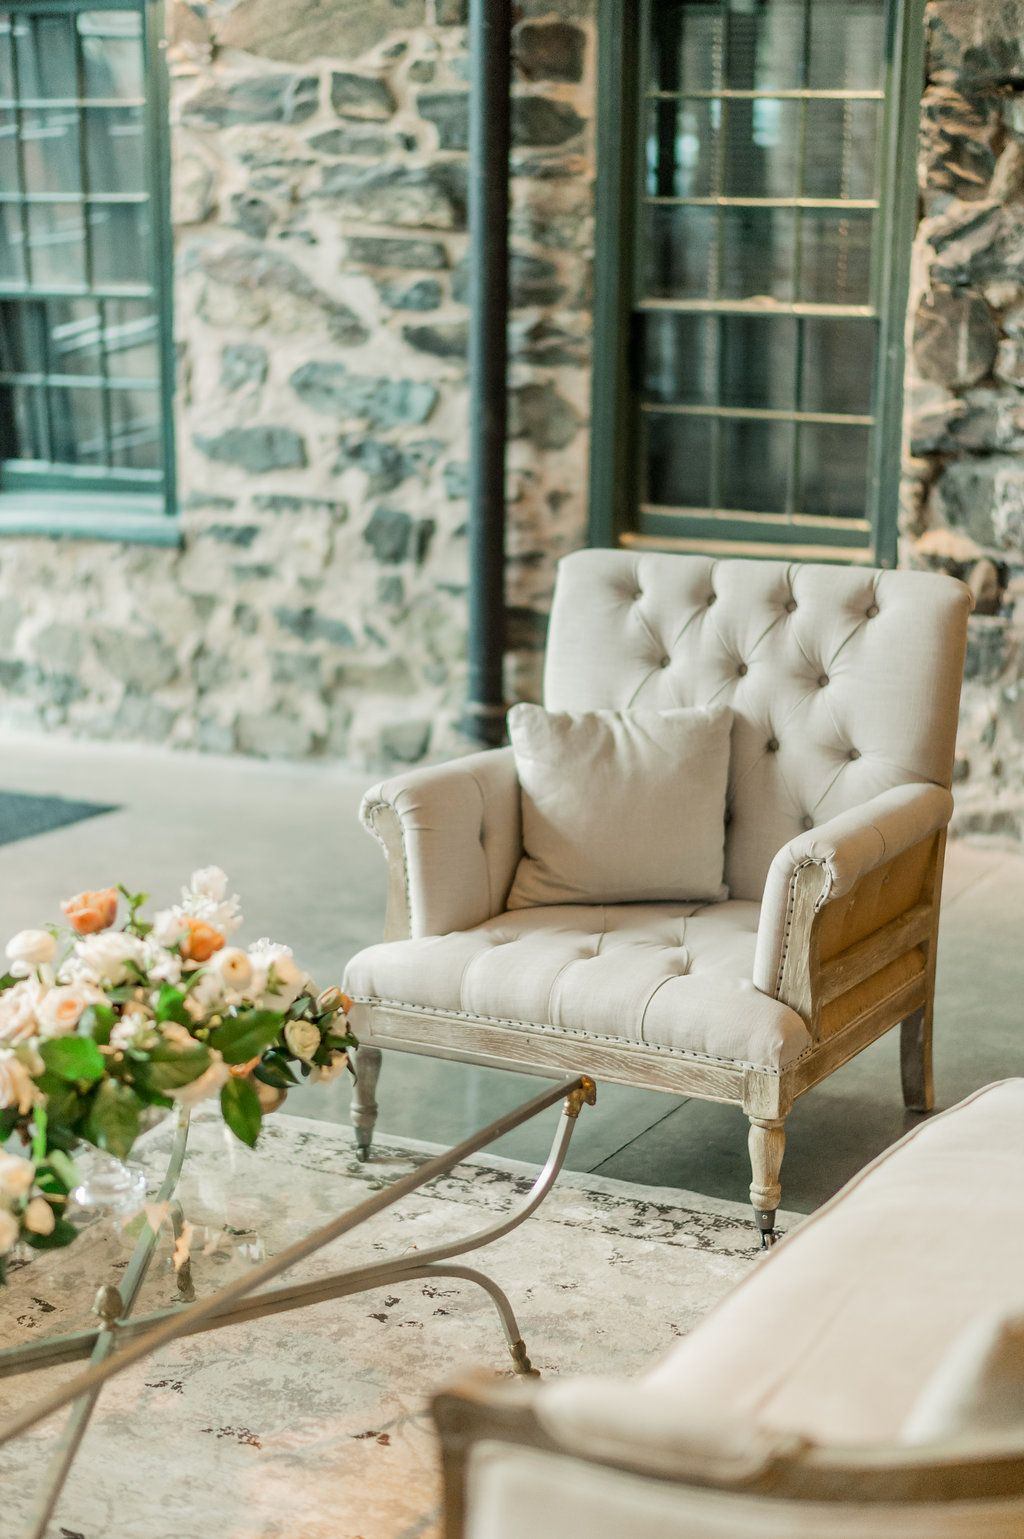 Chair Cover Rental Baltimore Patio Webbing Wedding Inspiration Planning Styling Adriana Marie Events Rentals White Glove Ft Rue Arm Photography Lauren R Swann